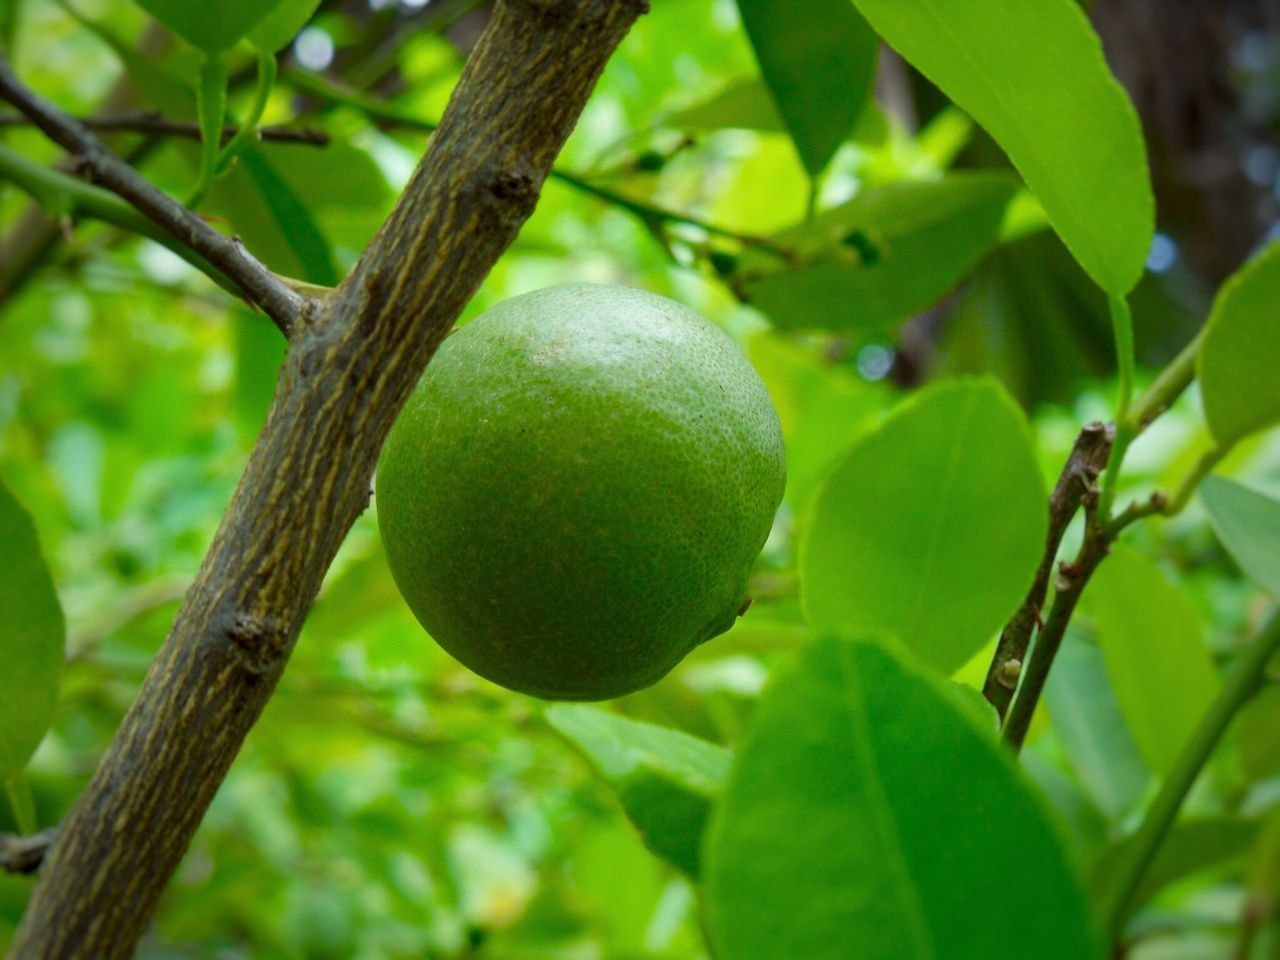 fruit, growth, green color, food and drink, tree, leaf, healthy eating, food, freshness, nature, focus on foreground, close-up, citrus fruit, branch, no people, day, outdoors, beauty in nature